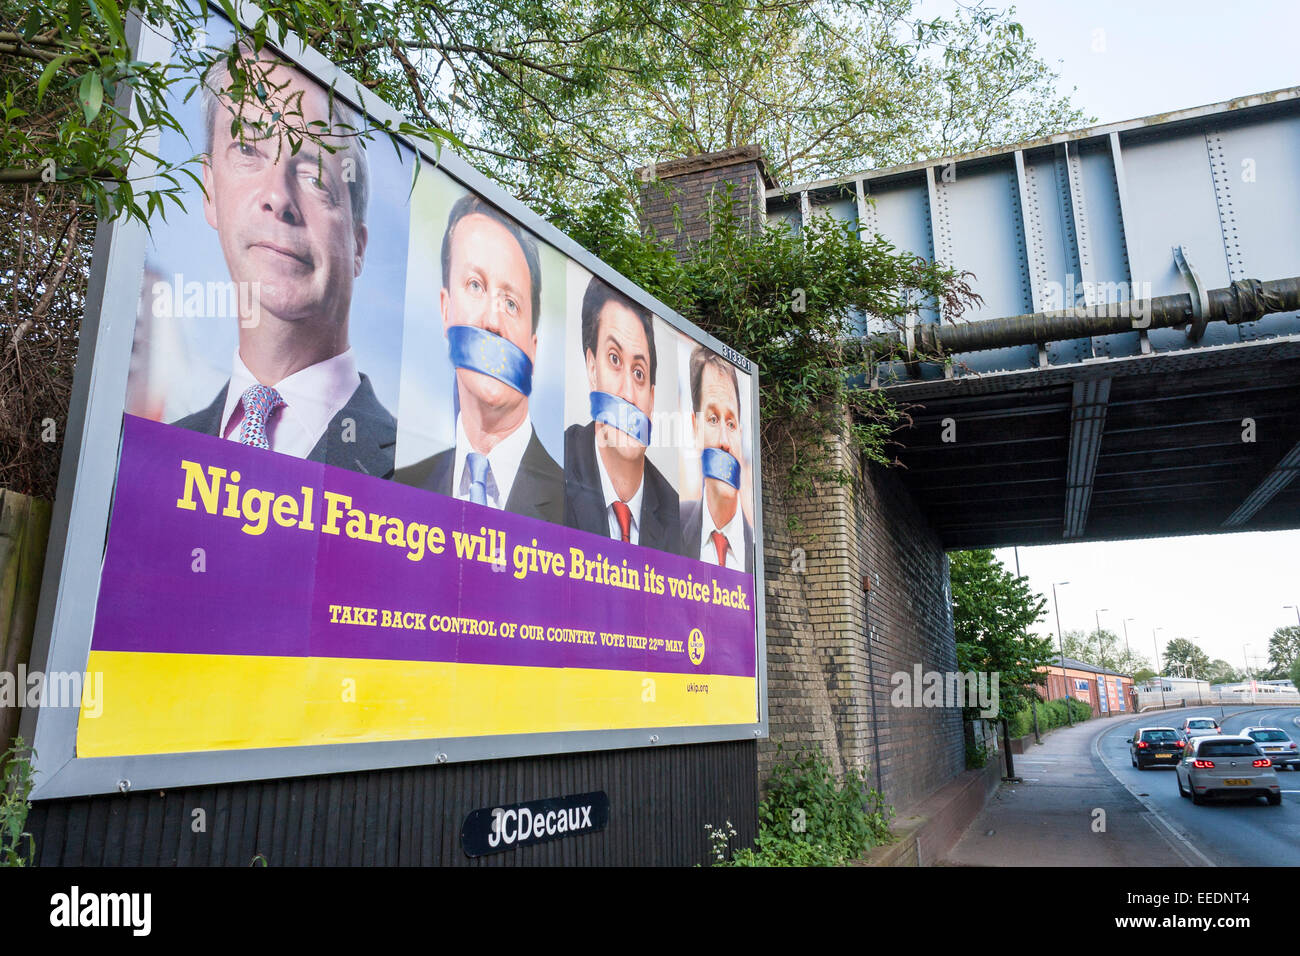 UKIP poster on roadside billboard for EU elections 2014 - Stock Image